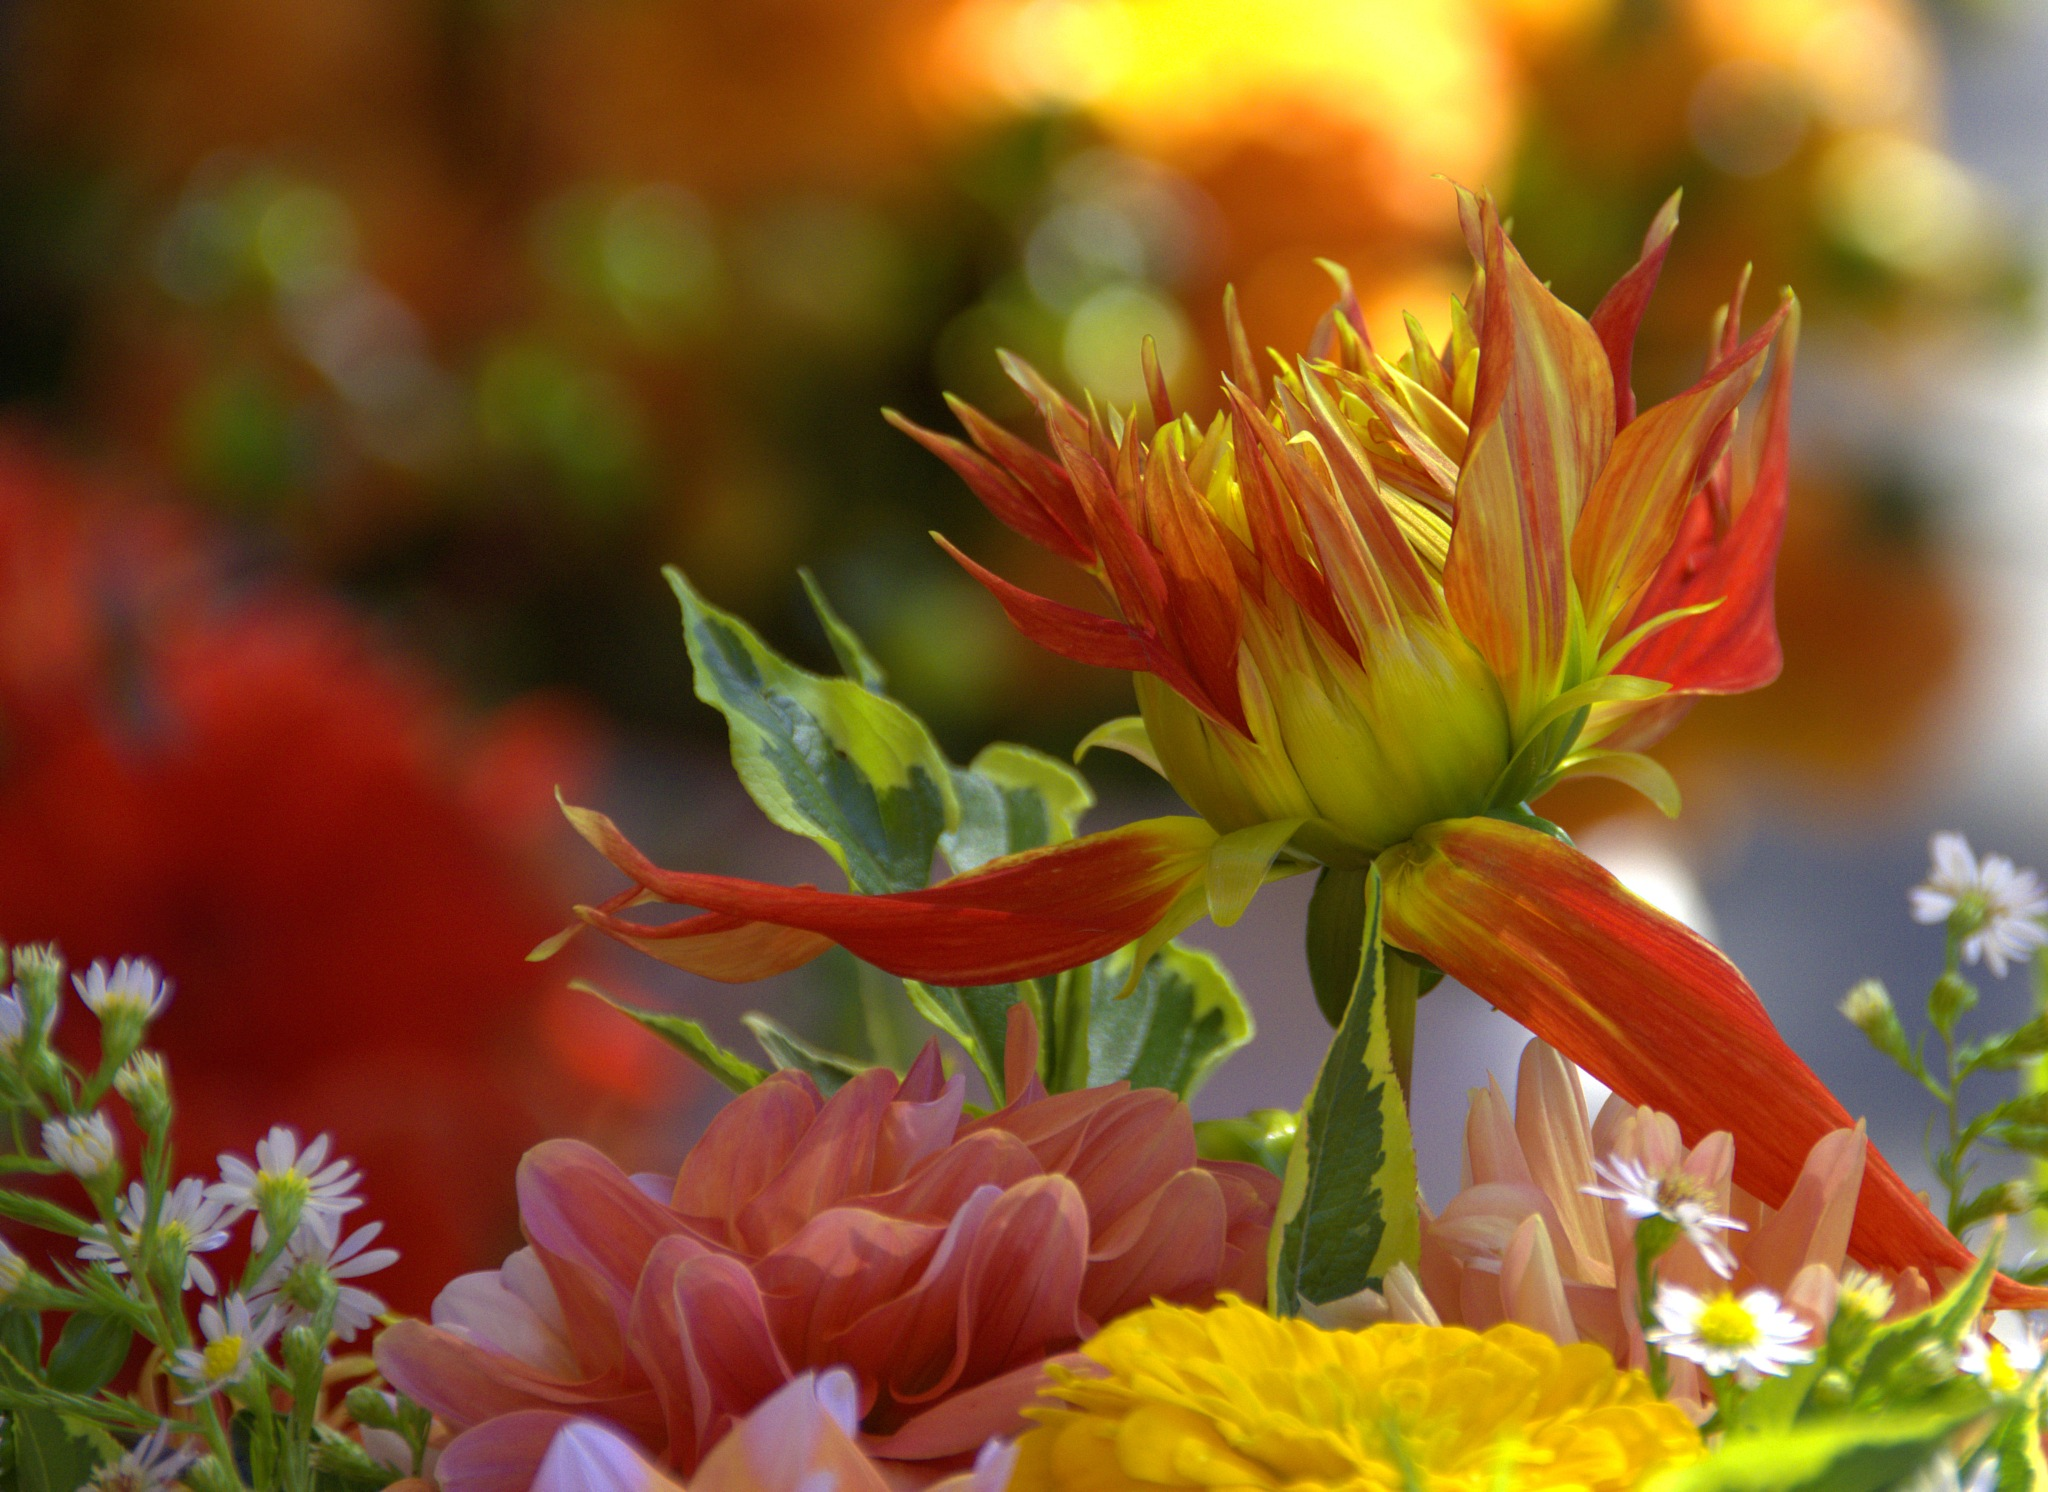 Bouquet & Bokeh by pscottwong